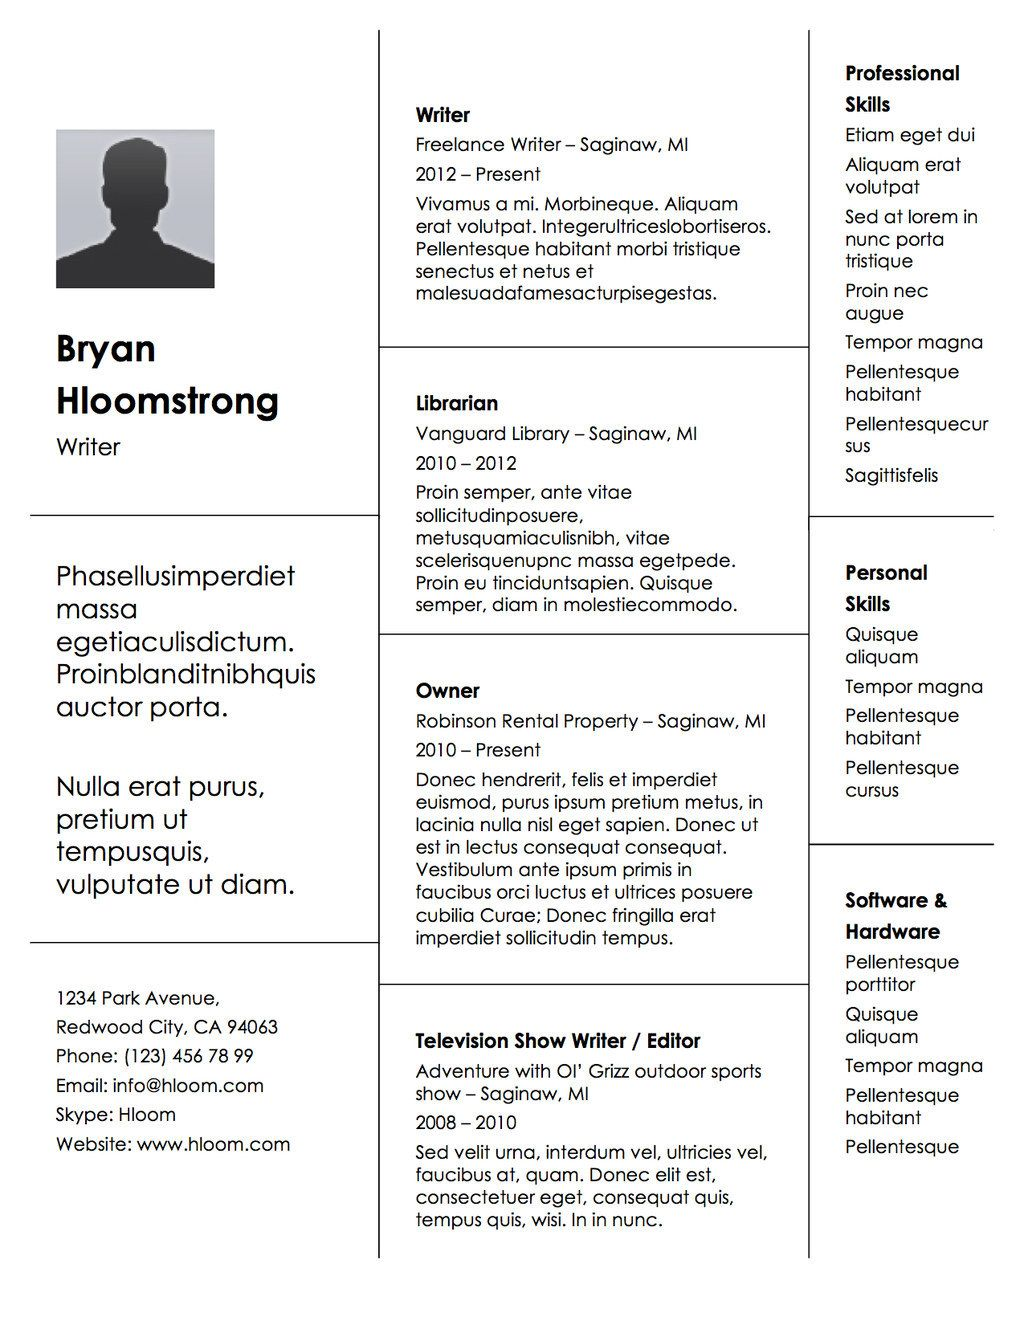 Buzzfeed Resume Templates Your Employment History Stacked Up In Block Form For